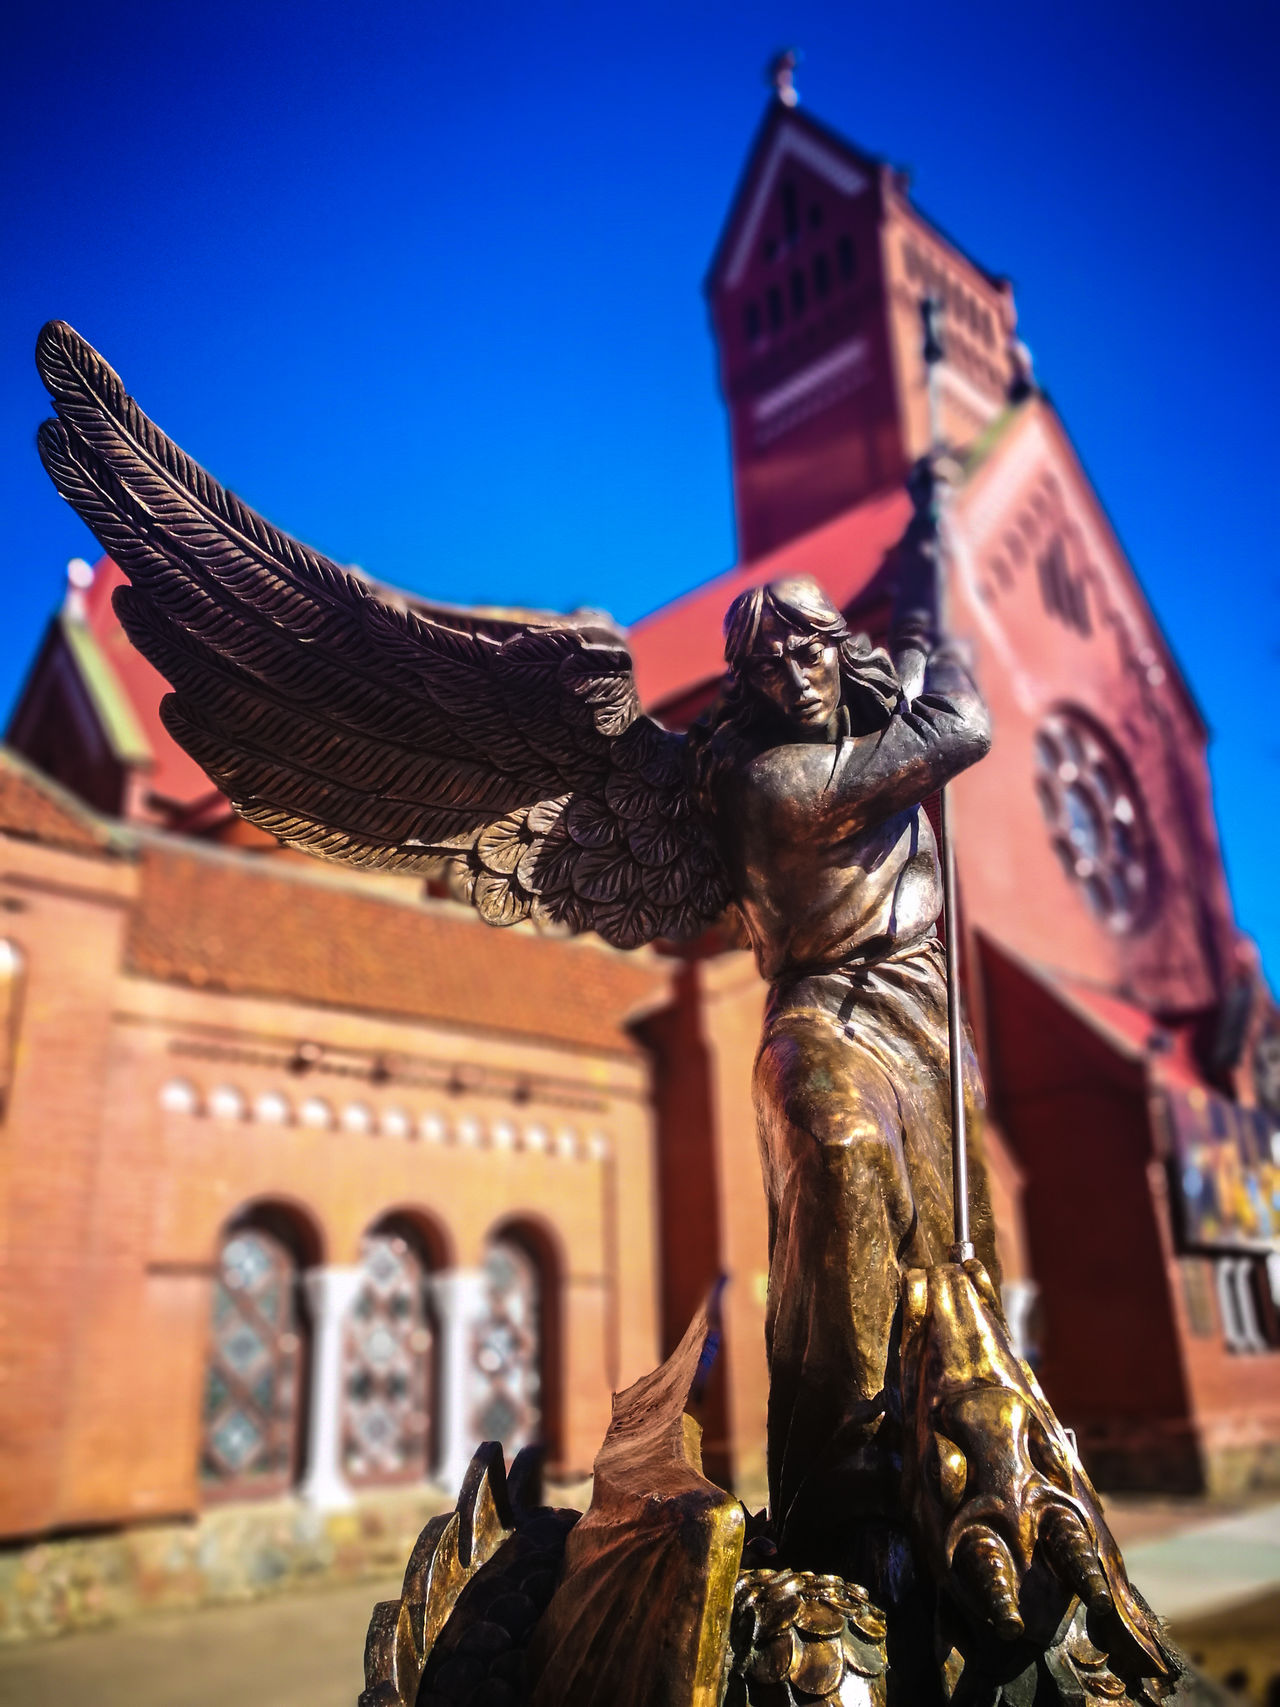 Angel Archangel Archangel Michael Architecture Belarus Blue Blurred Background Building Exterior Built Structure City Clear Sky Day Focus On Foreground History Horse HuaweiP9 Human Representation Male Likeness Minsk No People Outdoors Sculpture Sky Statue Travel Destinations